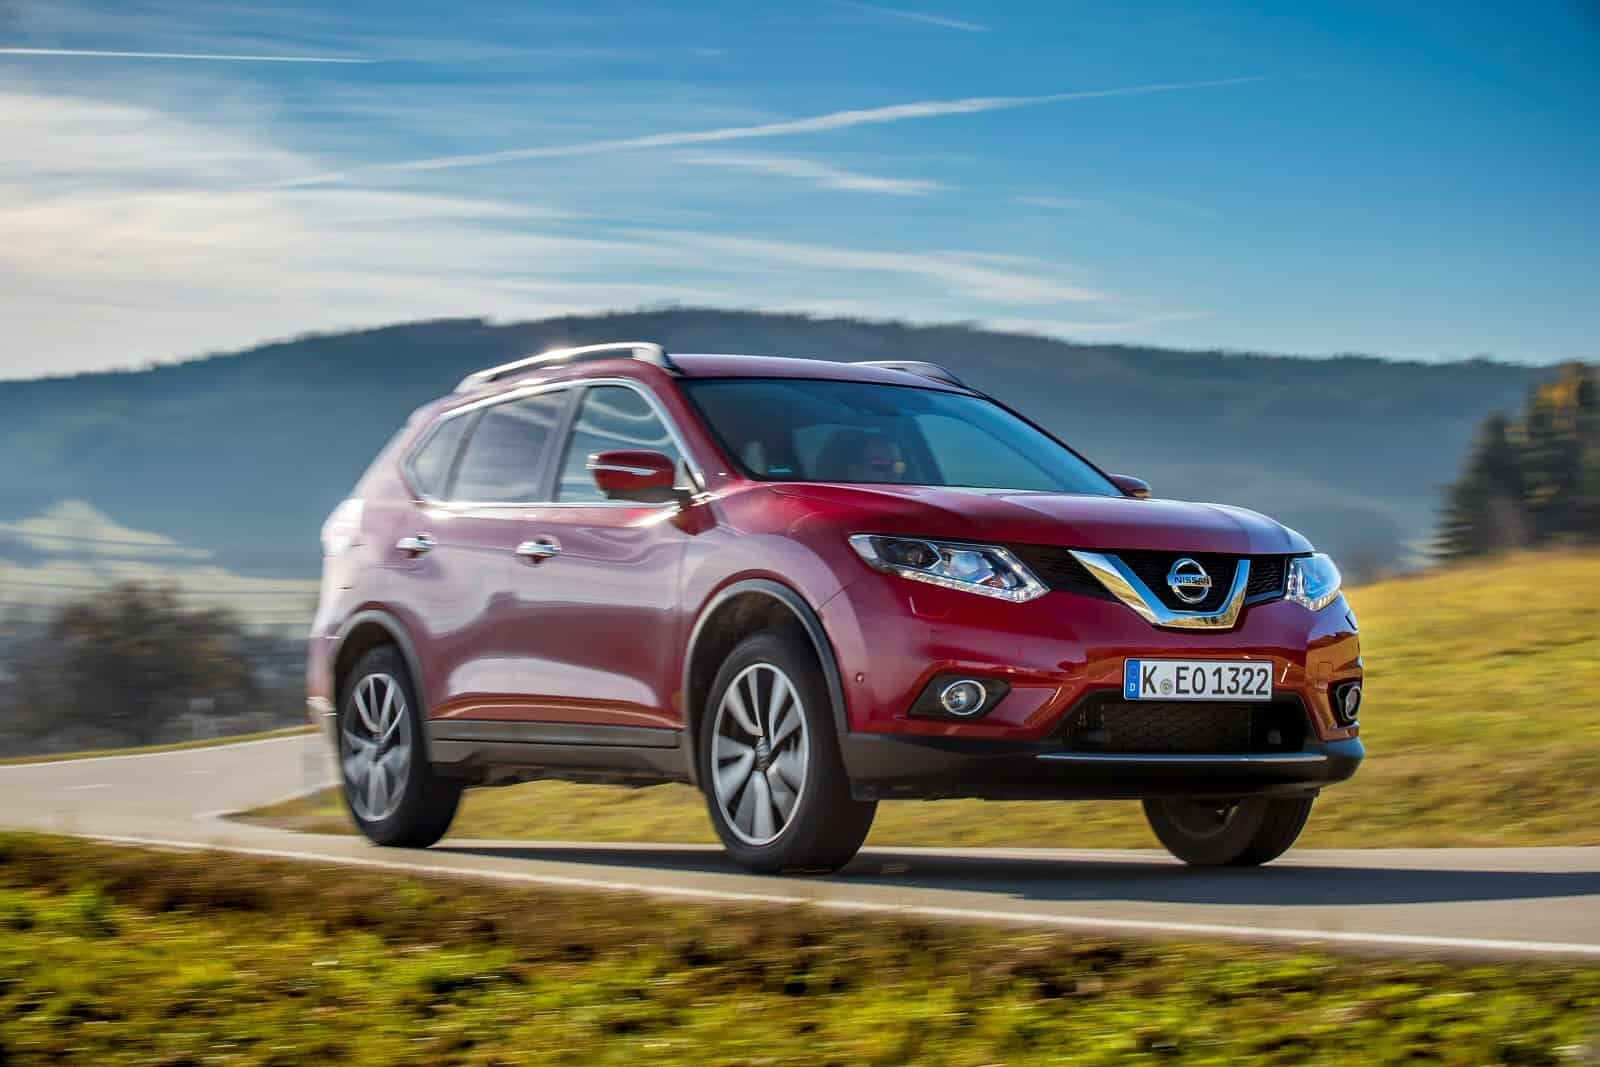 What makes Nissan a reliable car?